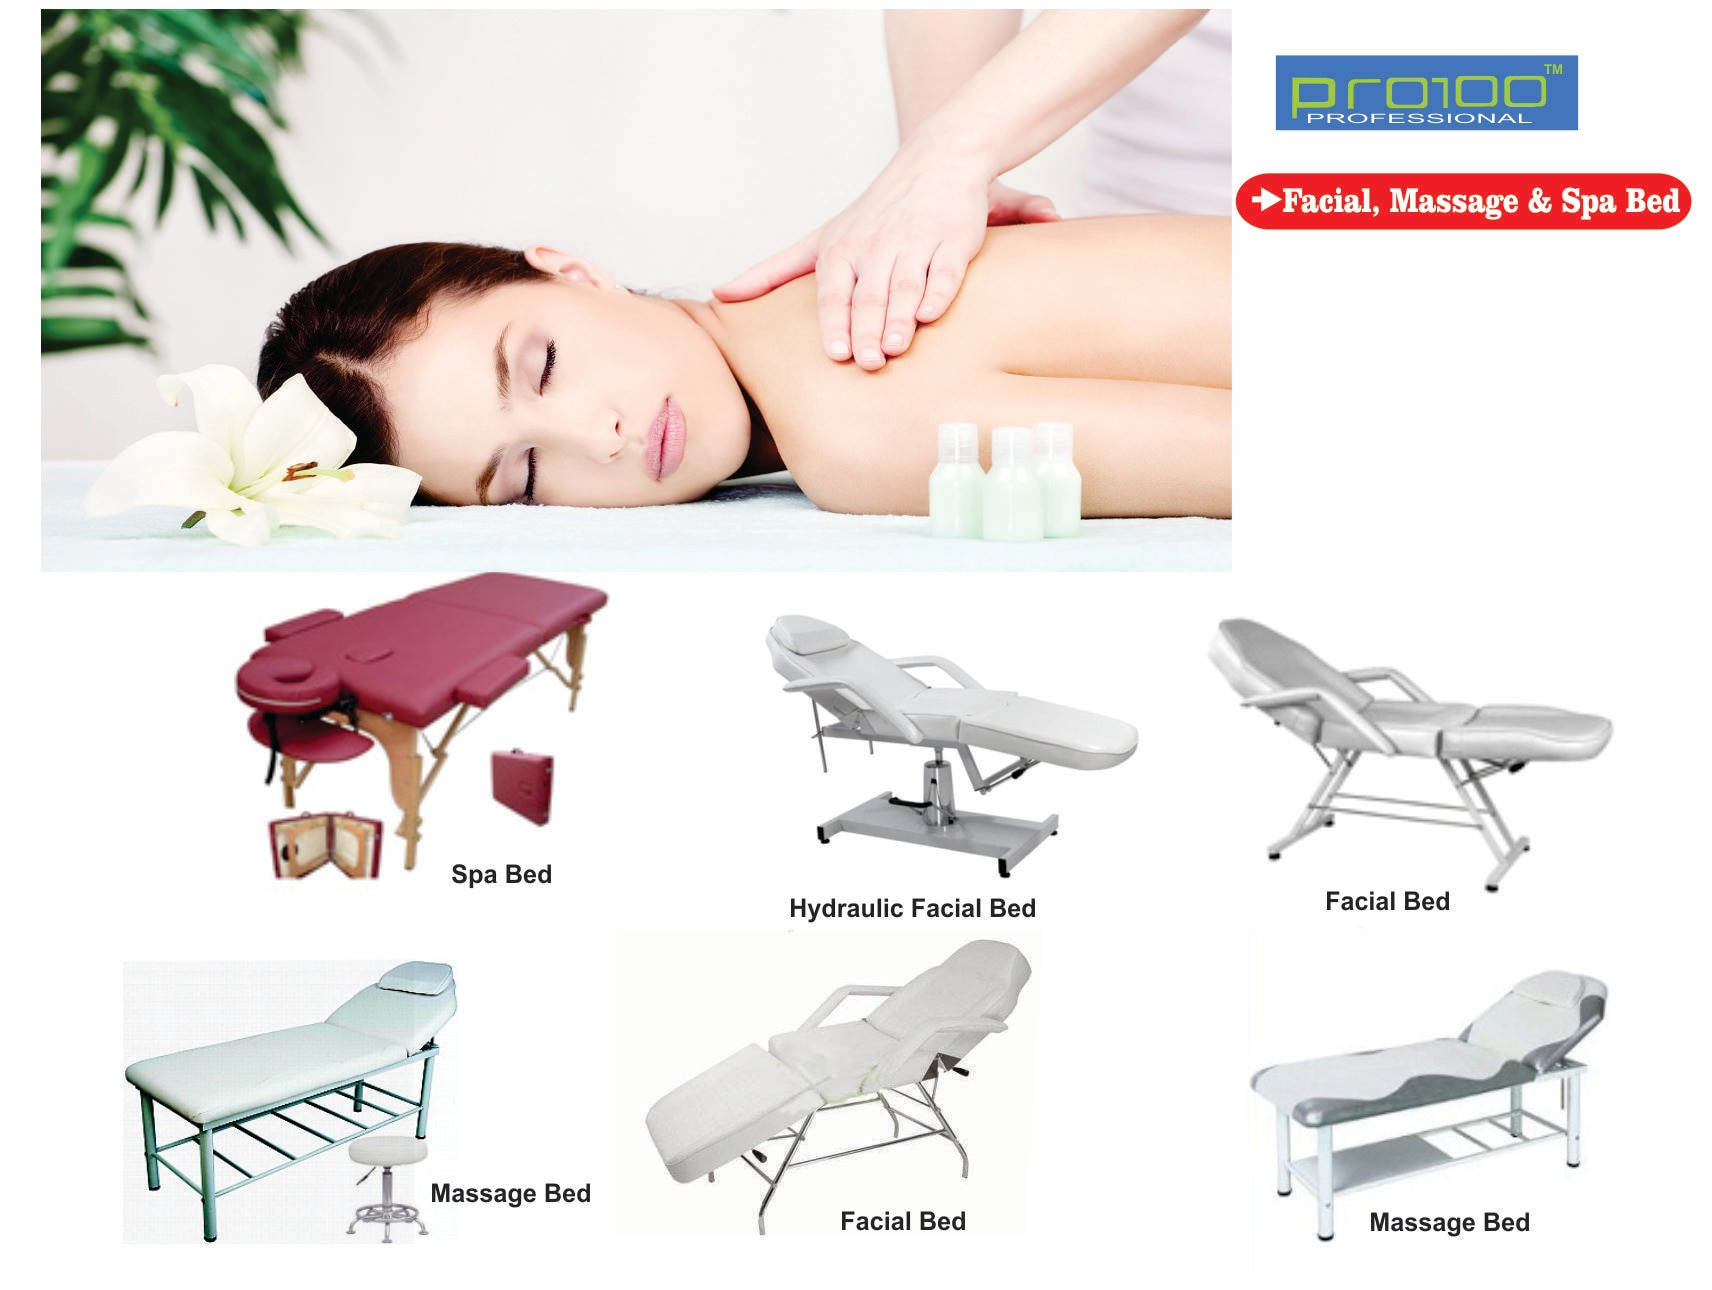 Upgrade your salon with our professional range of FACIAL MASSAGE and SPA BED . Contact us for best price. We are SUPPLIER OF FACIAL MASSAGE and SPA BED in KOLKATA